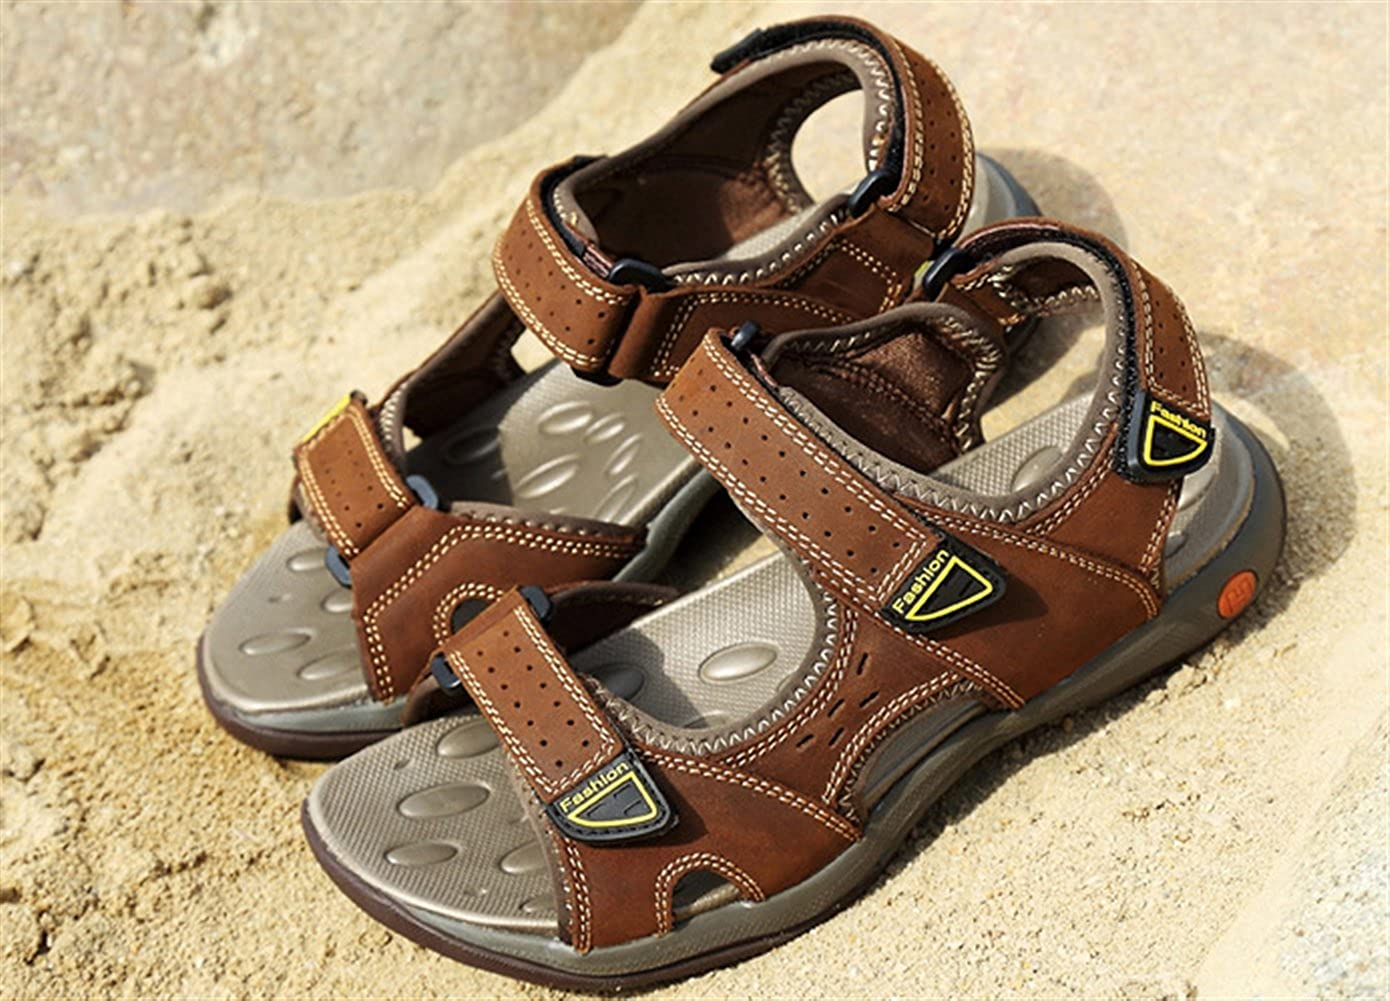 Liveinu Mens Sandals Outdoor Leather Open-Toe Sandals Non-Slip Sports Water Sandal Shoes